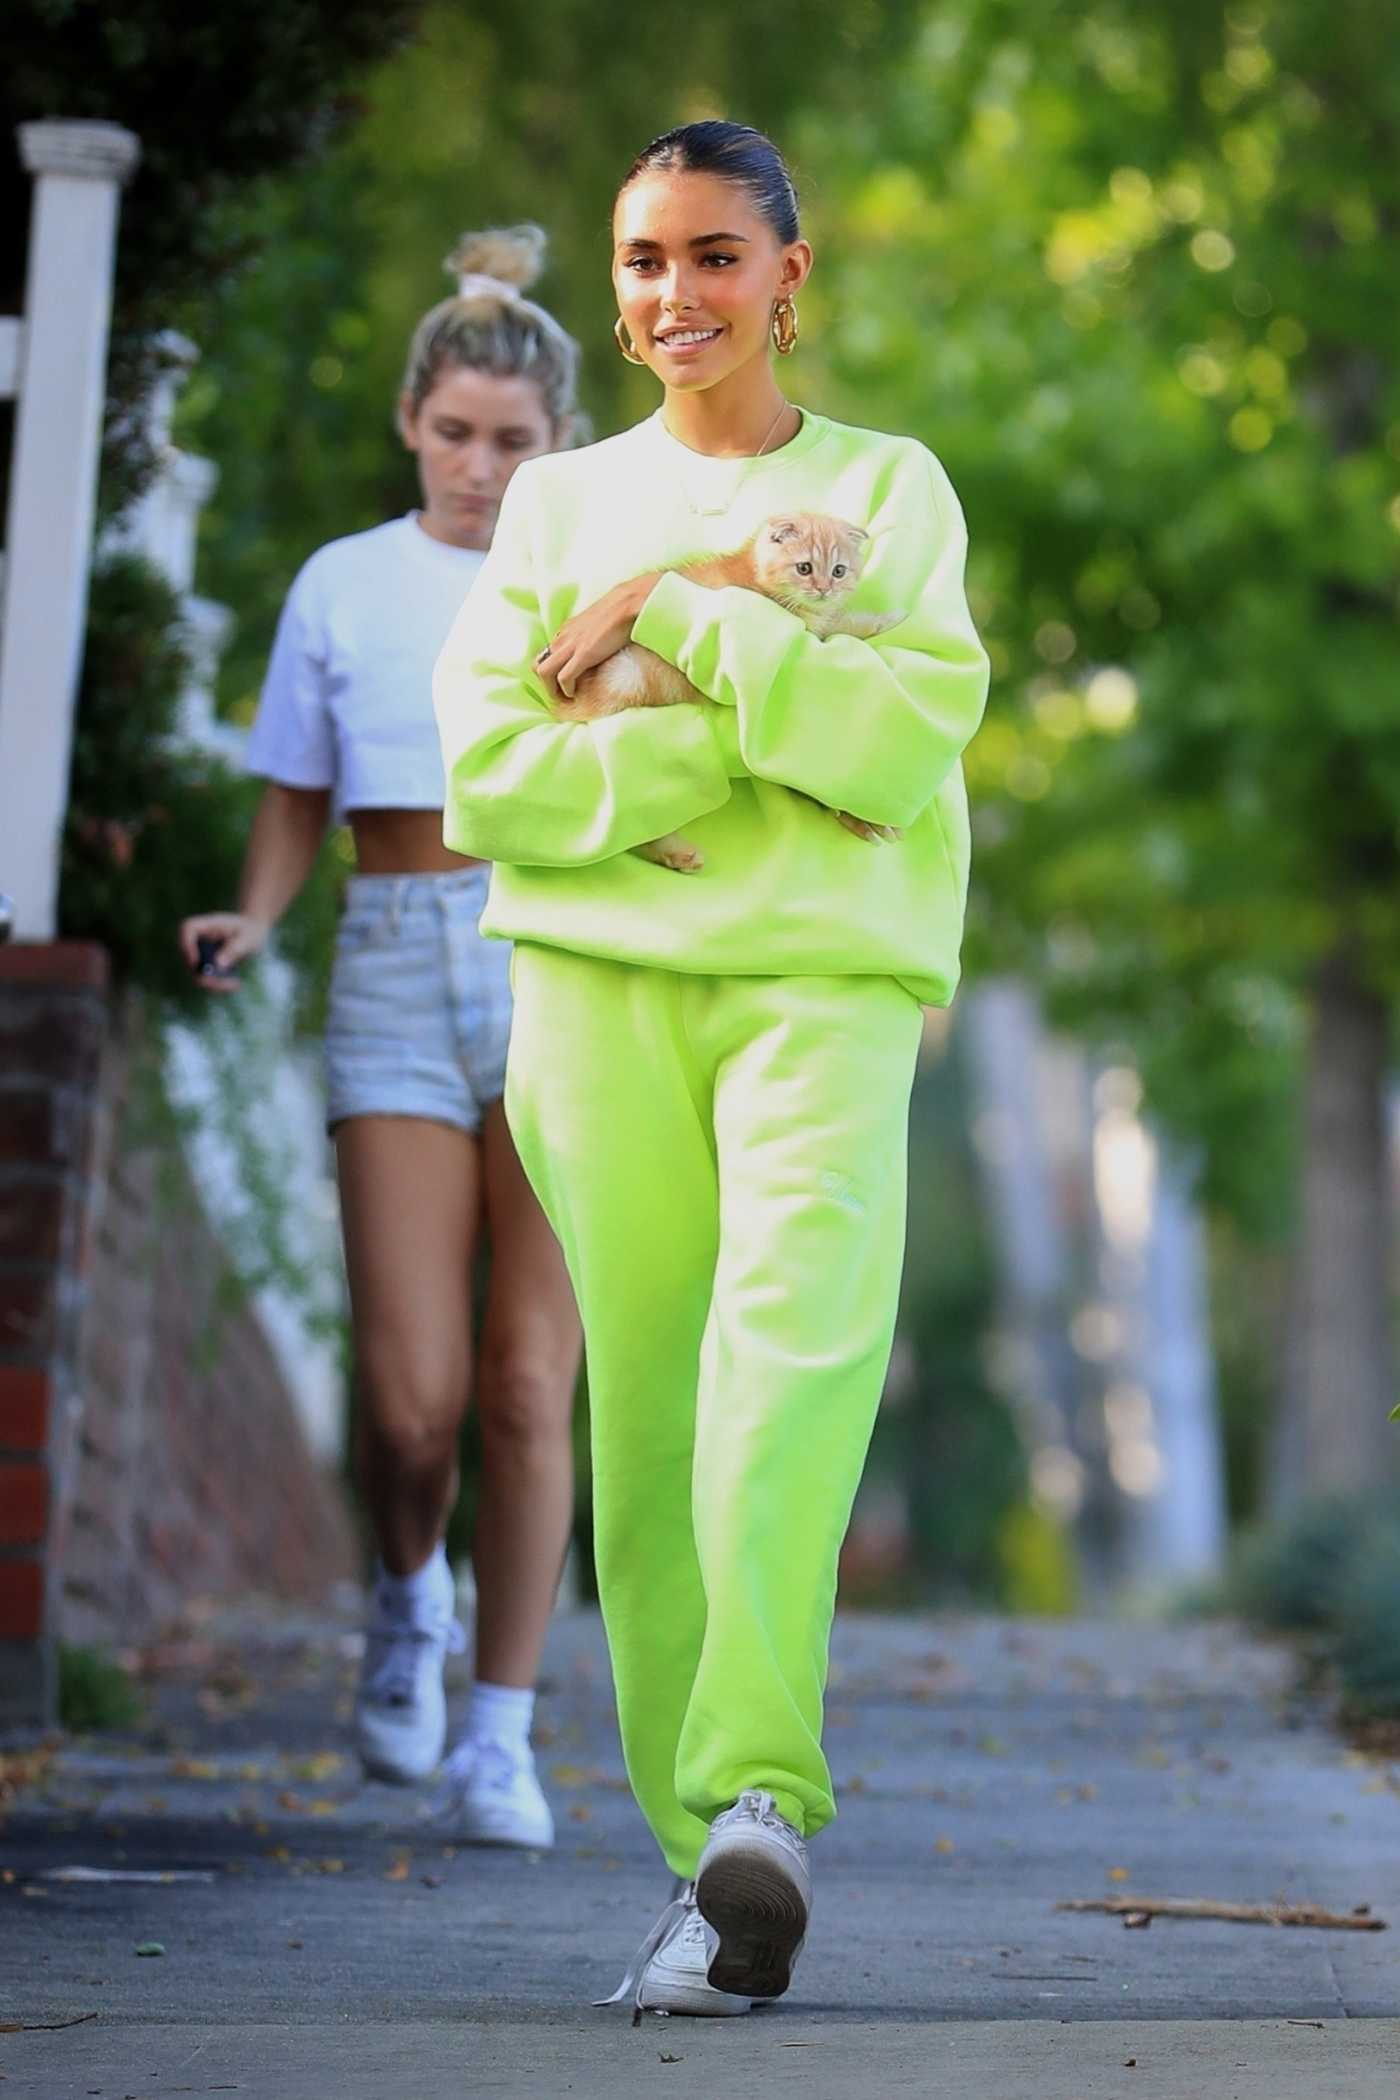 Madison Beer in a Neon Green Sweat Suit Was Spotted Out with her New Kitten Rex in West Hollywood 06/16/2019